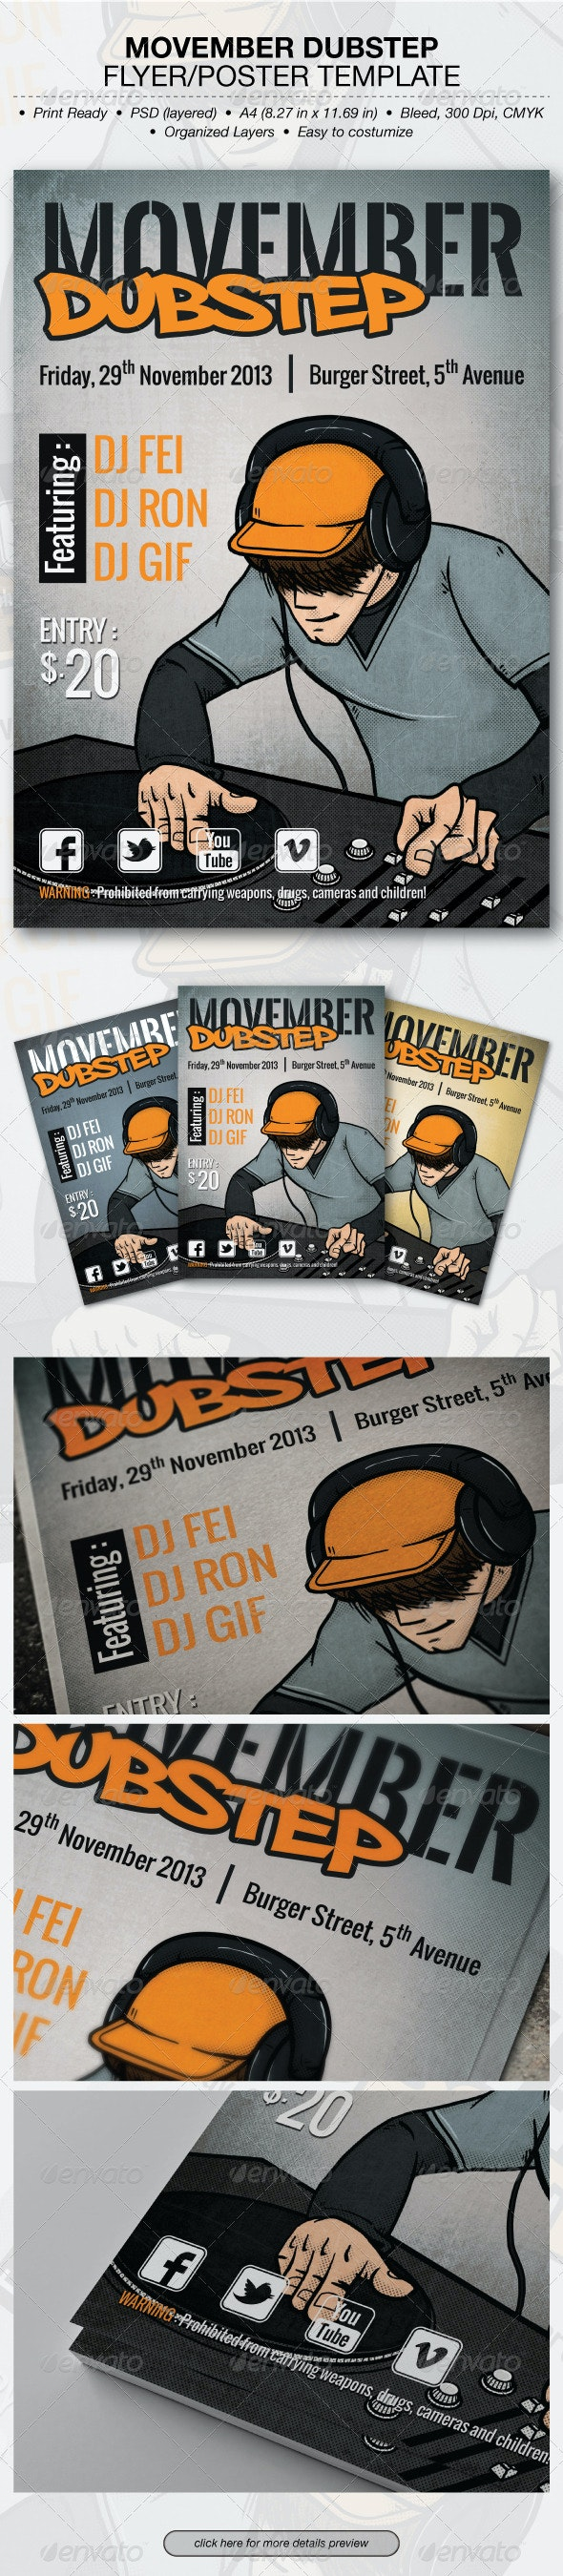 Movember Dubstep Flyer/Poster Template - Clubs & Parties Events